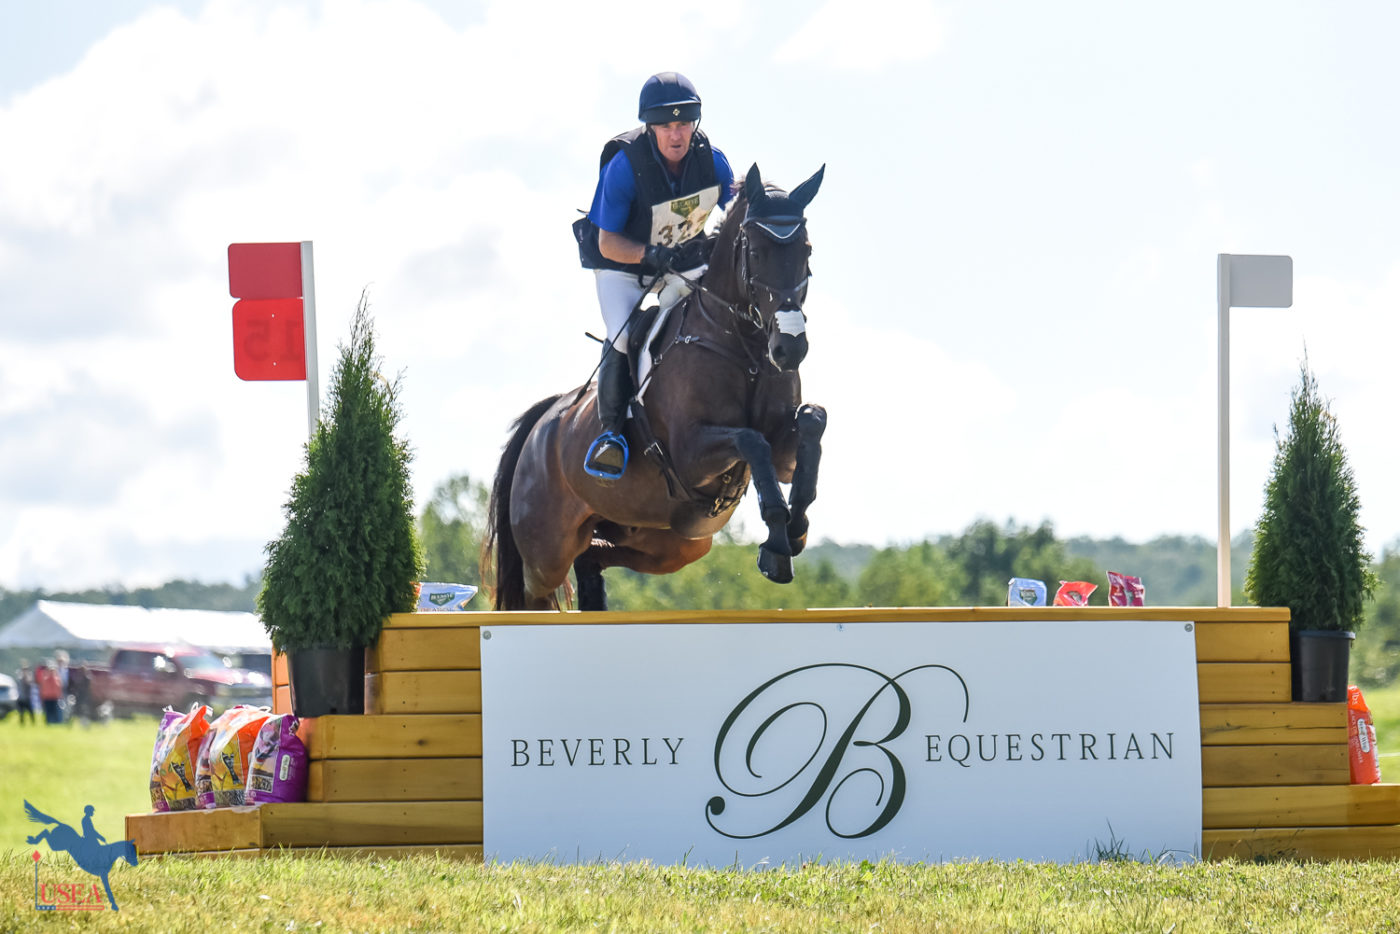 CCI3*-S 1st - Phillip Dutton and Fernhill Pick Pocket - 30.2